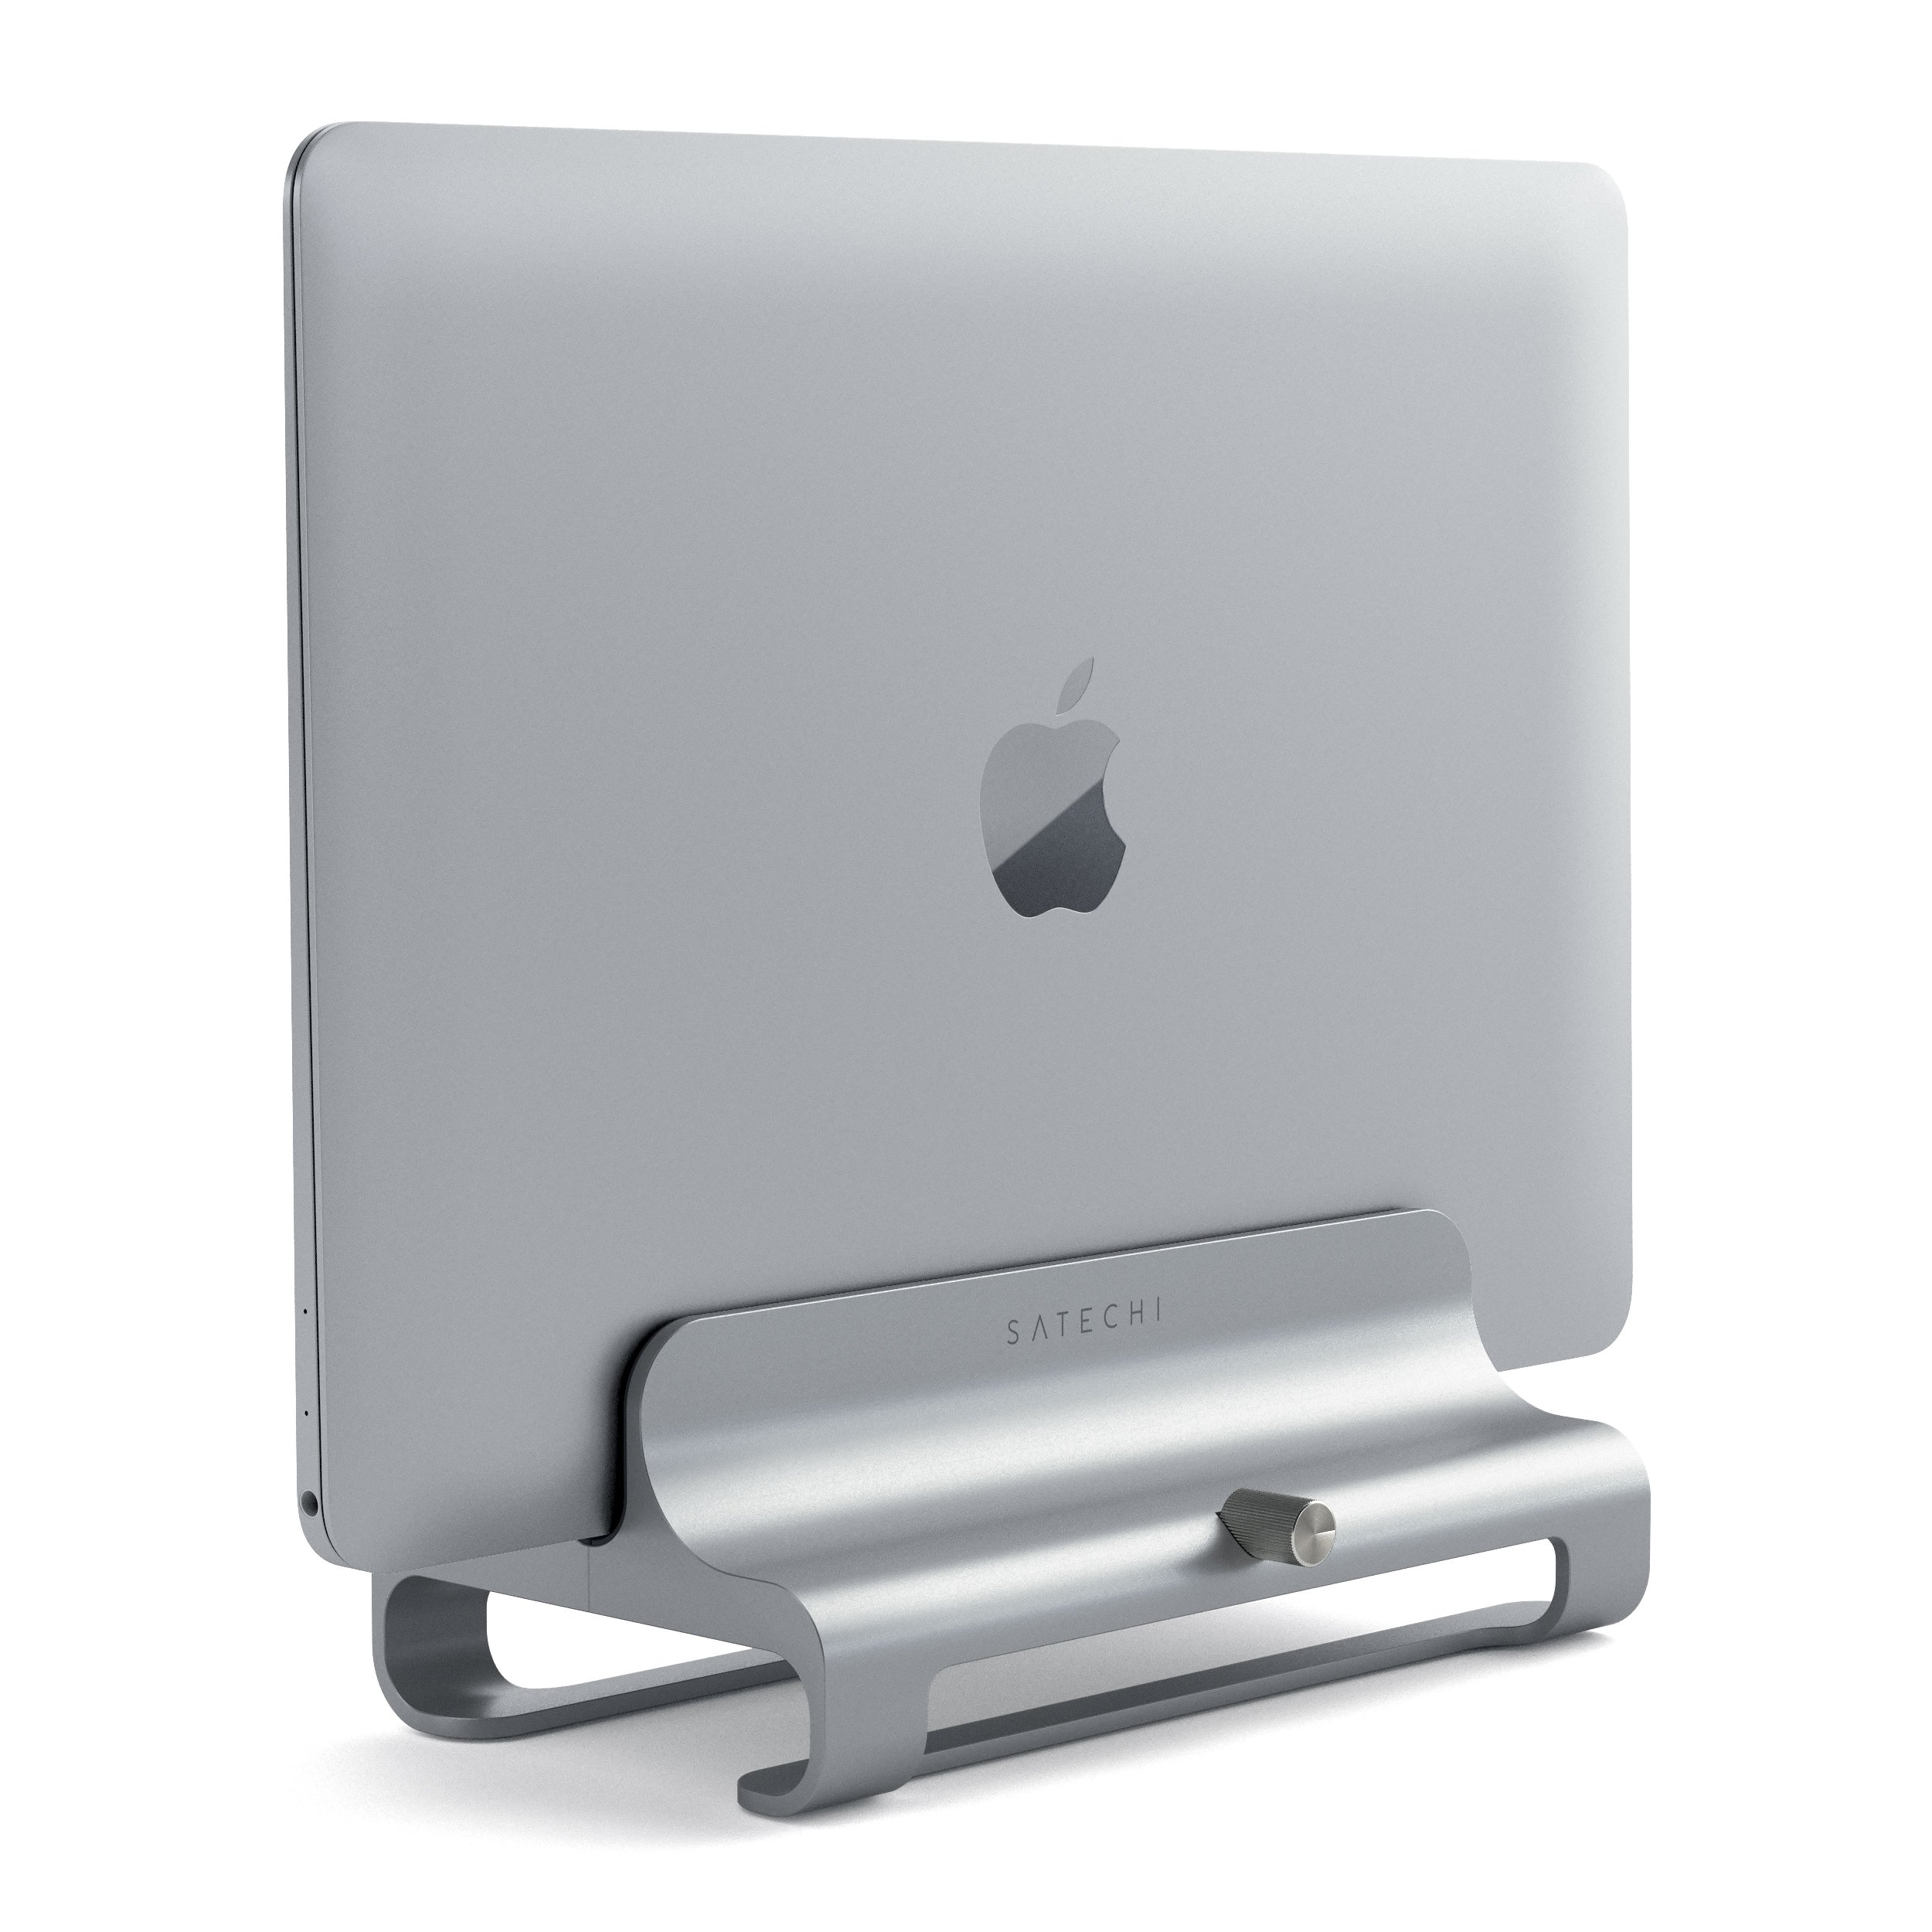 Satechi Universal Vertical Aluminum Laptop Stand for MacBook, MacBook Pro, Dell XPS, Lenovo Yoga, Asus Zenbook, Samsung Notebook and more (Silver)